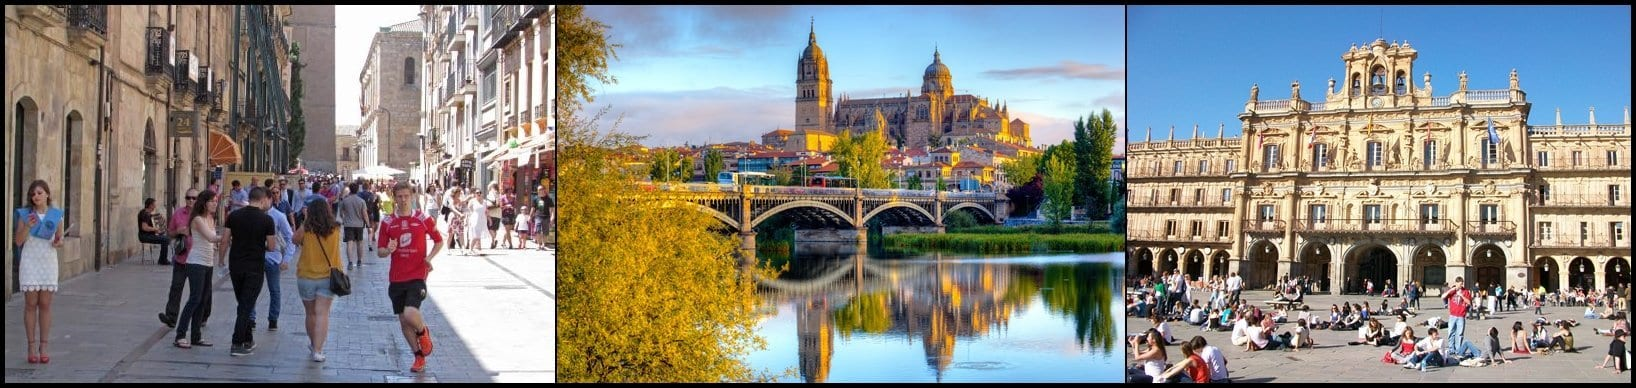 spanish-course-salamanca-spain